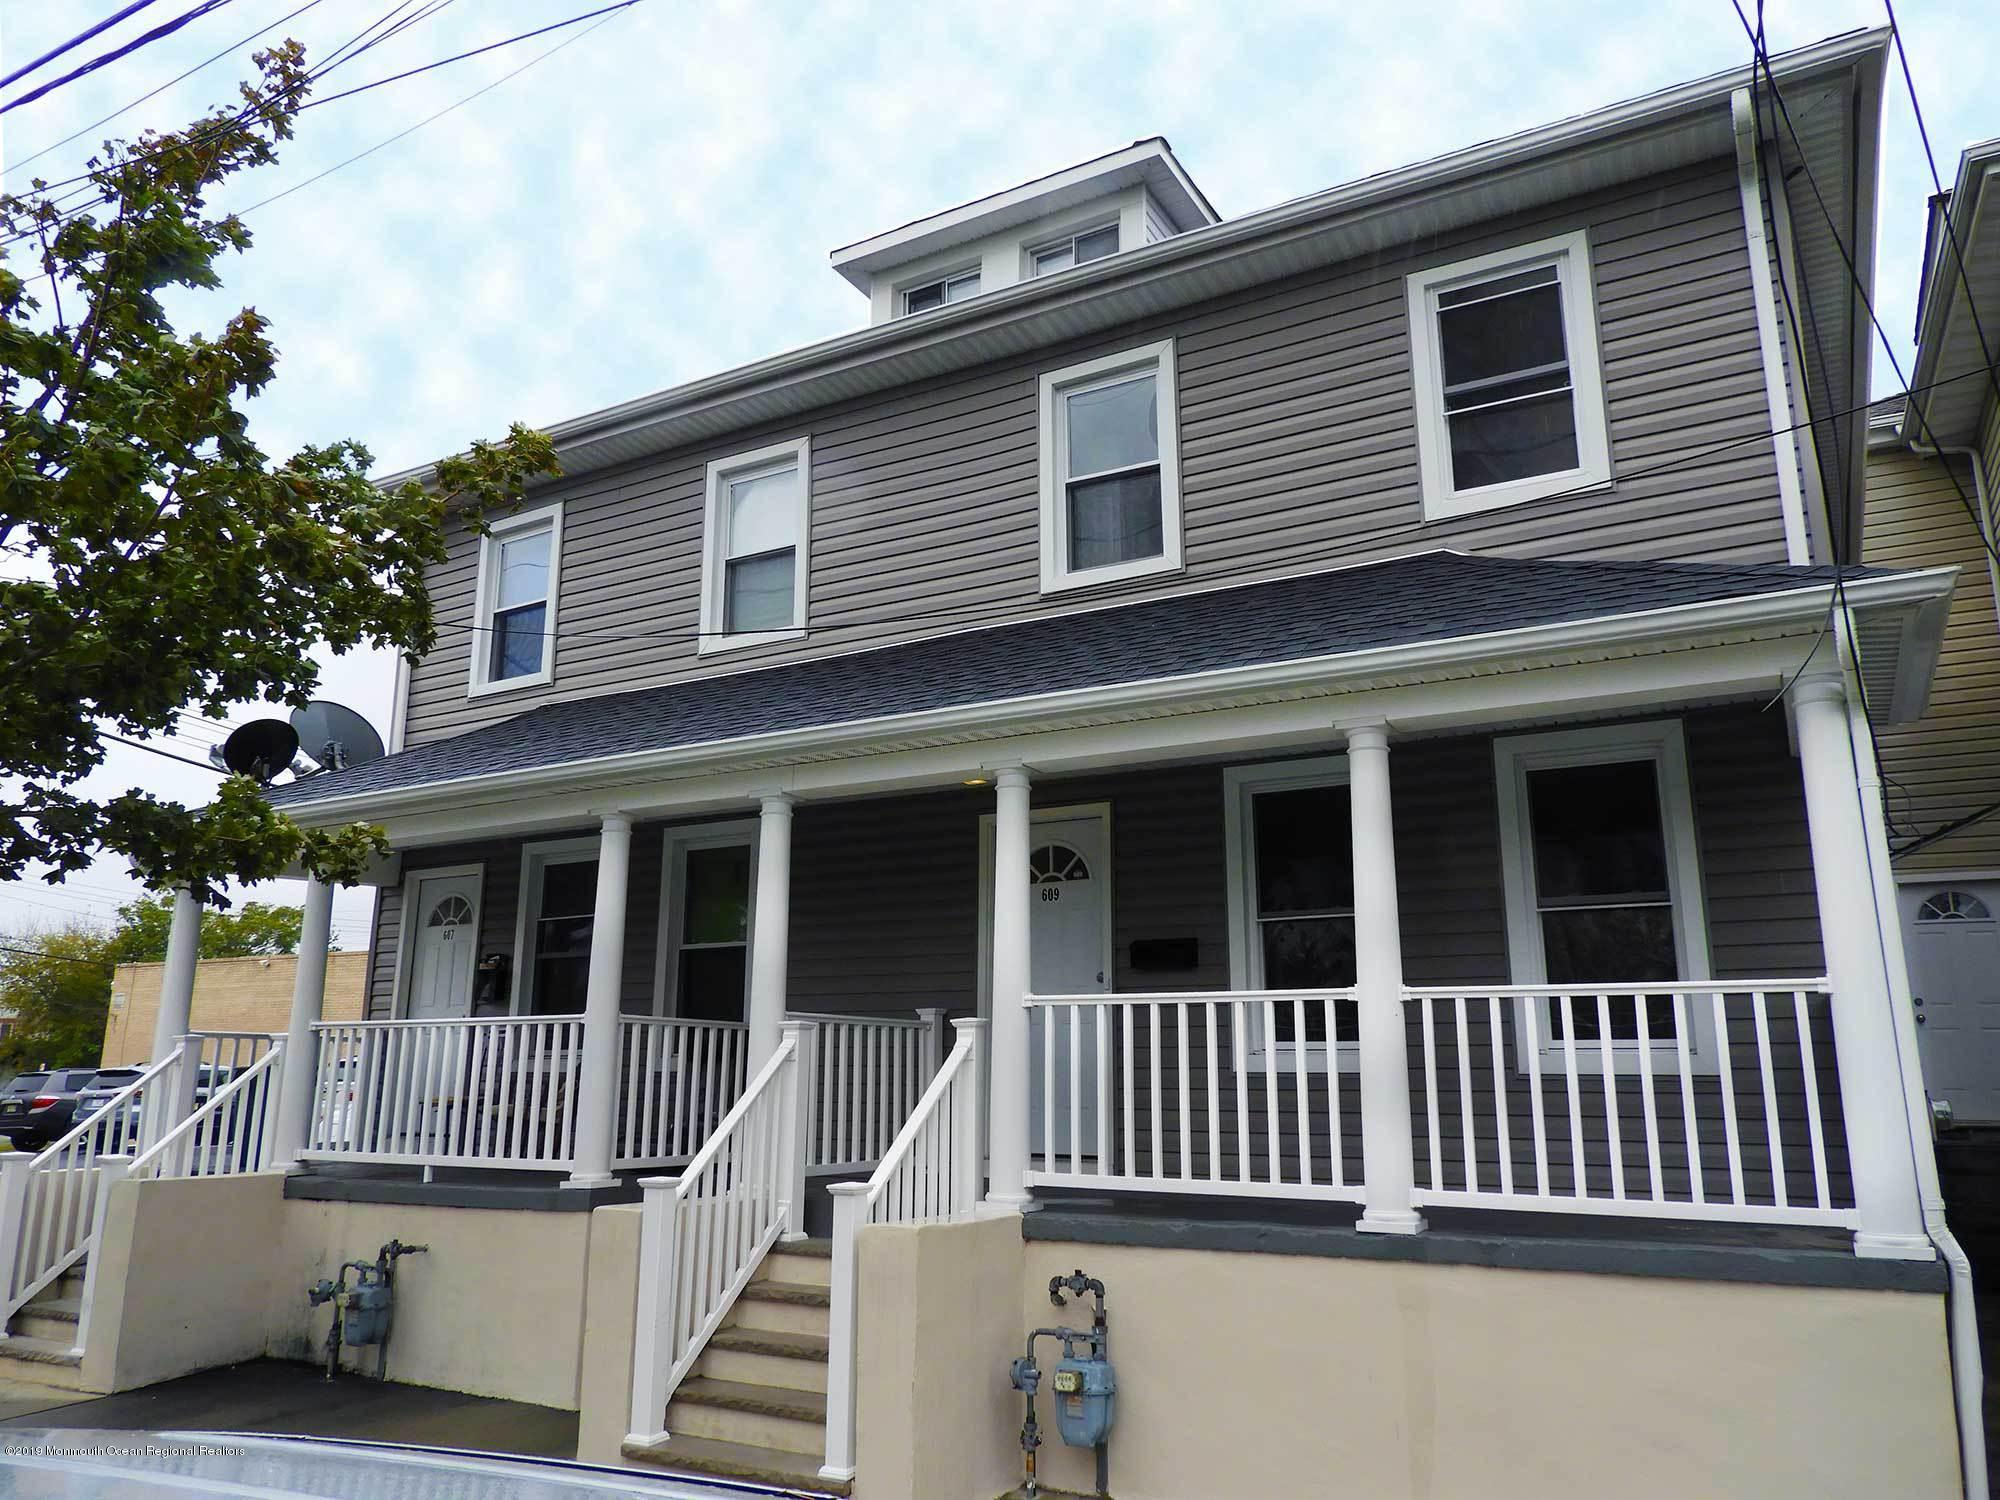 Bright, Sunny, Newly renovated 3 bedroom, one and half bath duplex.  Short walk to downtown, beach and train/bus station. Private entrance with a front and back porch.  All new appliances. Two levels. Parking still free on this end of Bond.Located on a quiet one way side street.